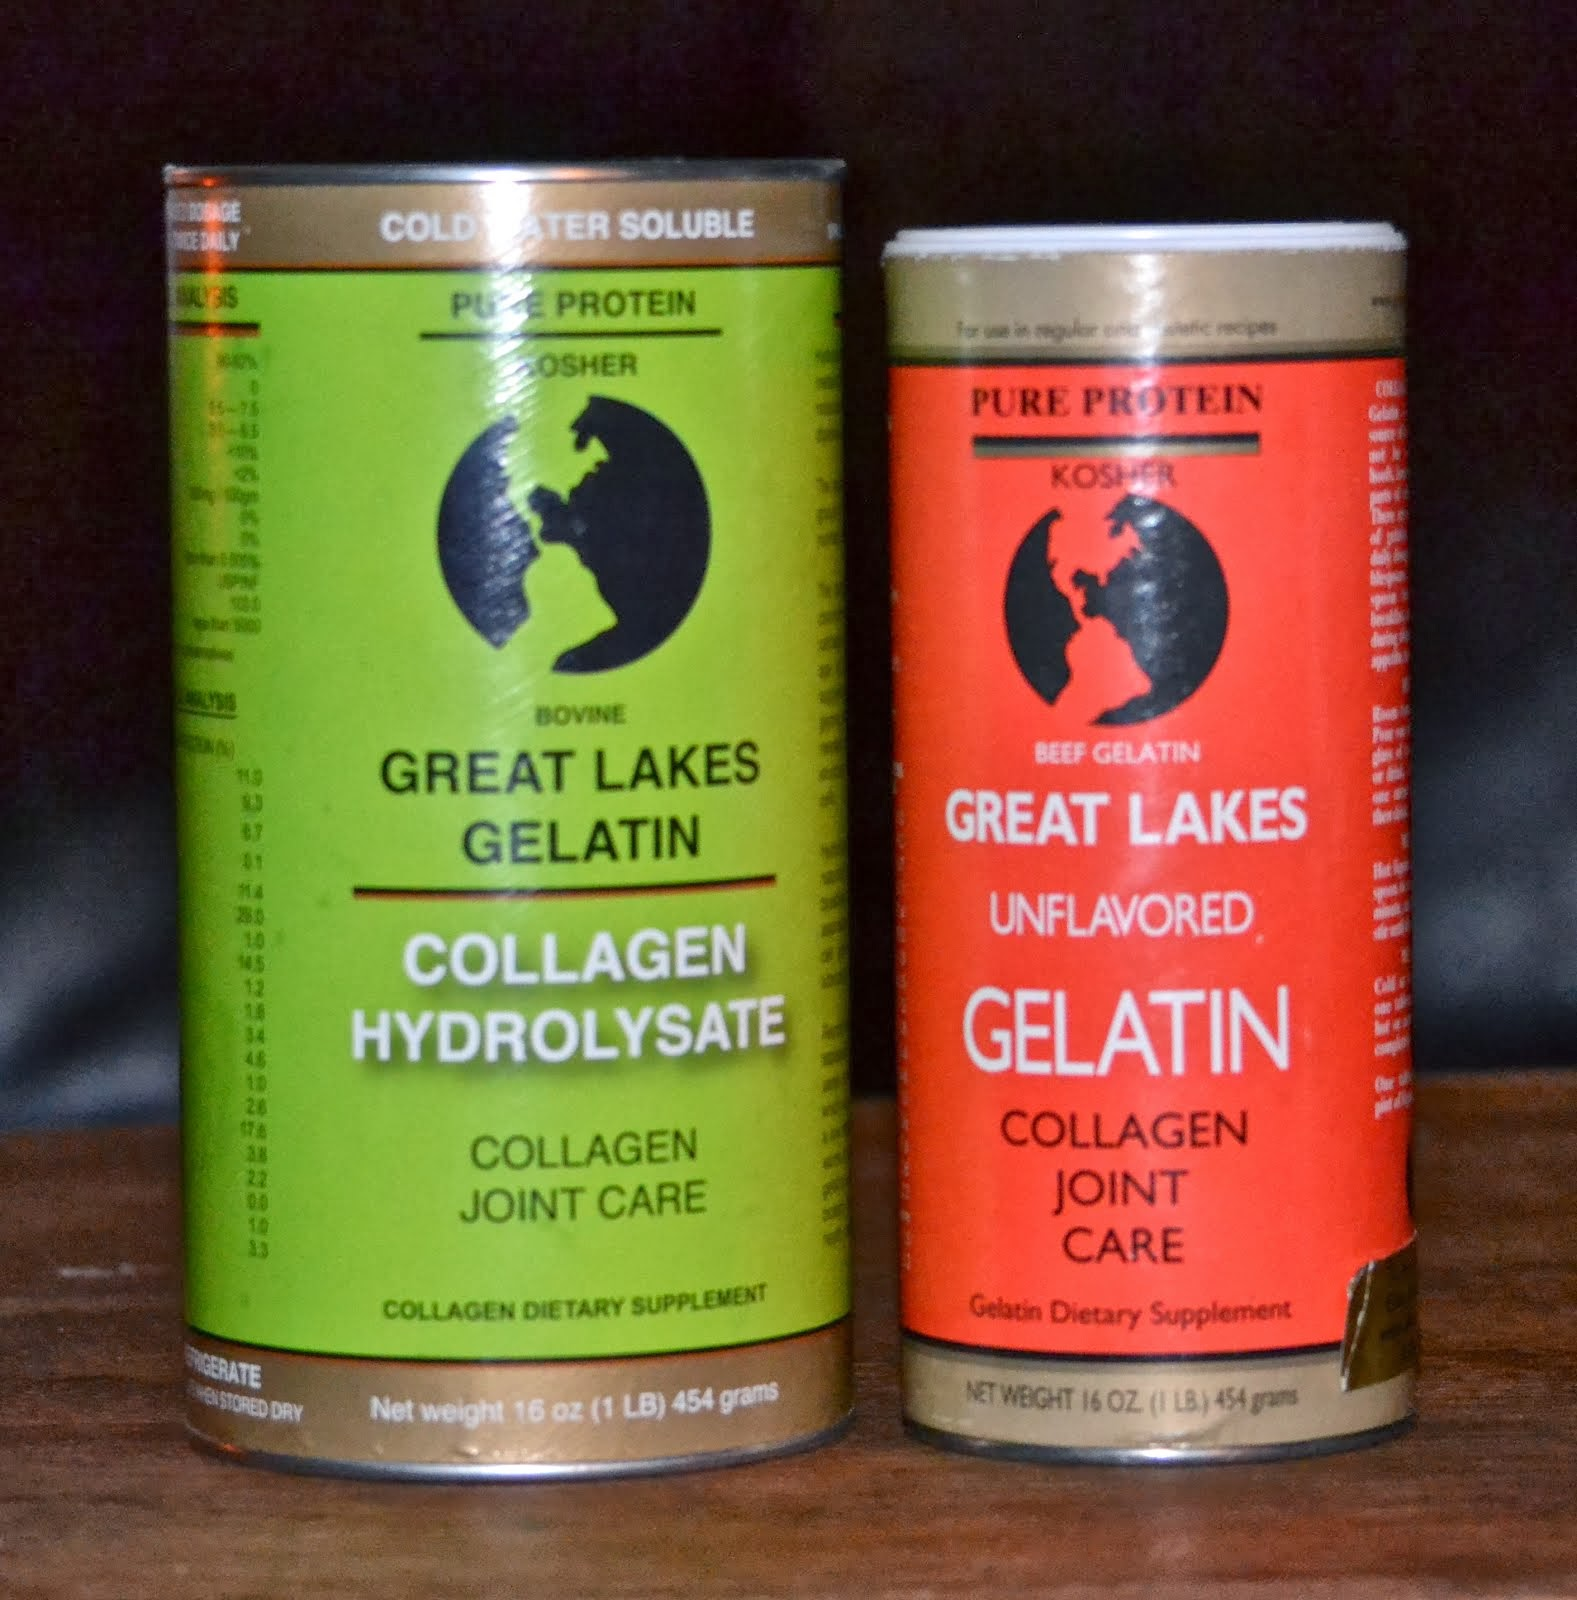 GELATIN HELPS HEAL LEAKY GUT